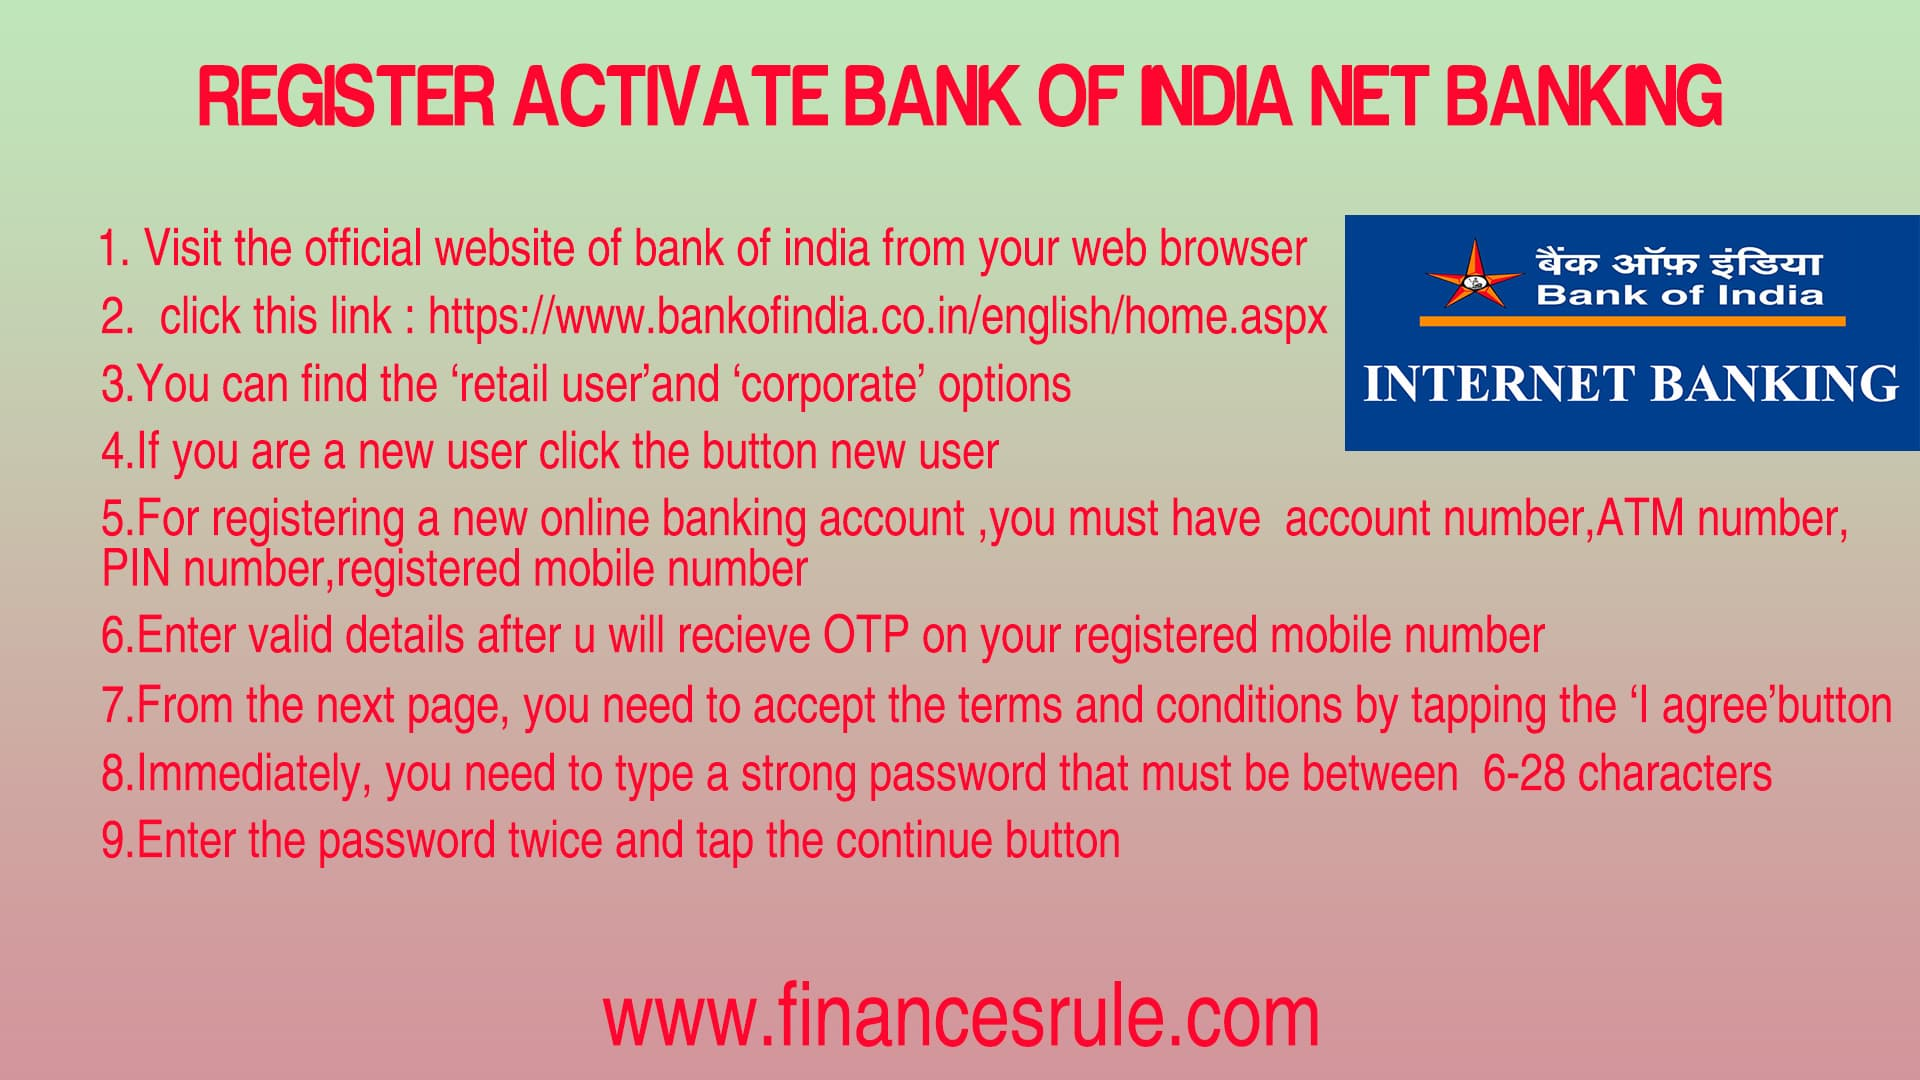 Bank of India Net banking